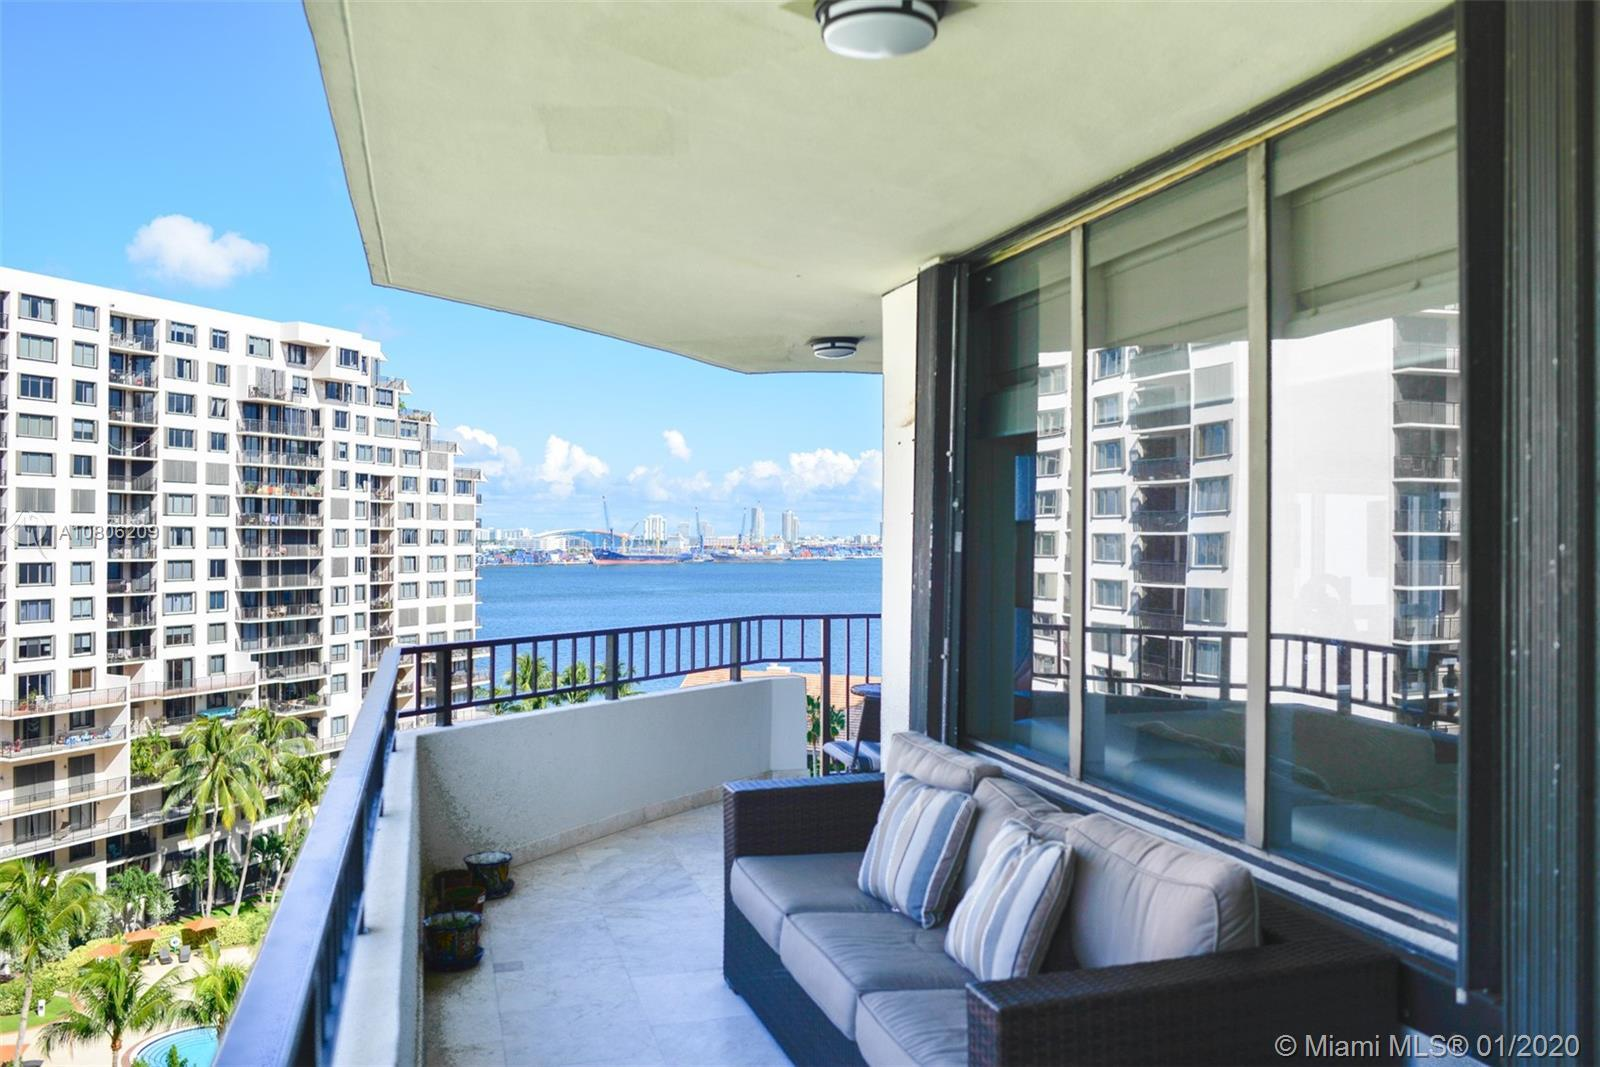 Very Spacious 3 bedrooms 3 full baths condo in Brickell Key One with beautiful bay, river and Bricke